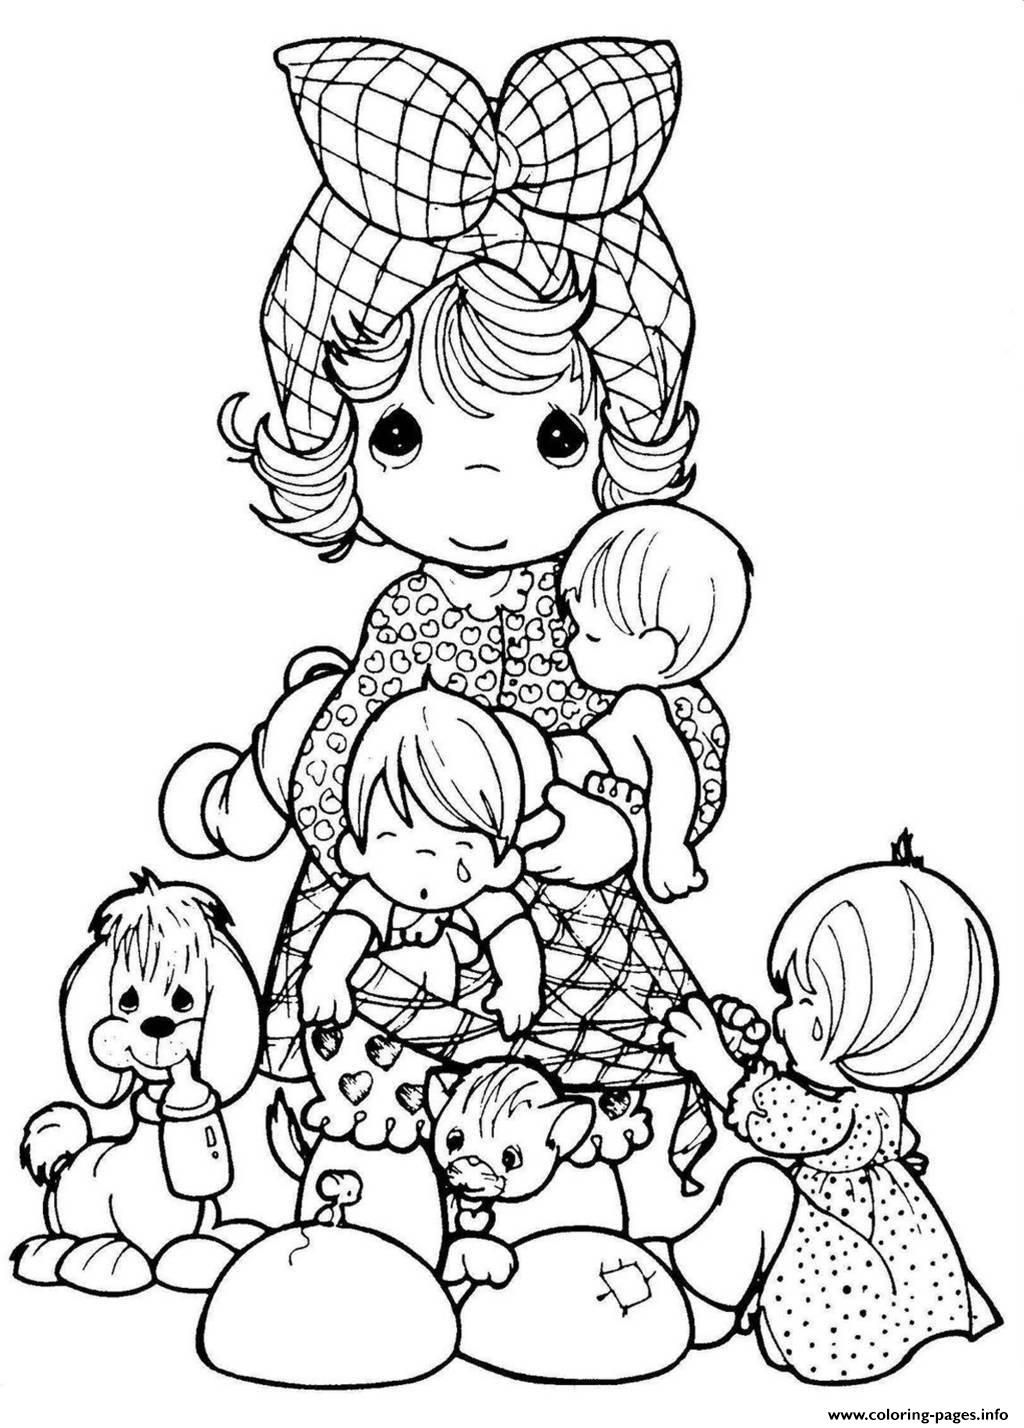 adult precious moments coloring pages printable and coloring book to print for free find more coloring pages online for kids and adults of adult precious - Precious Moments Coloring Book